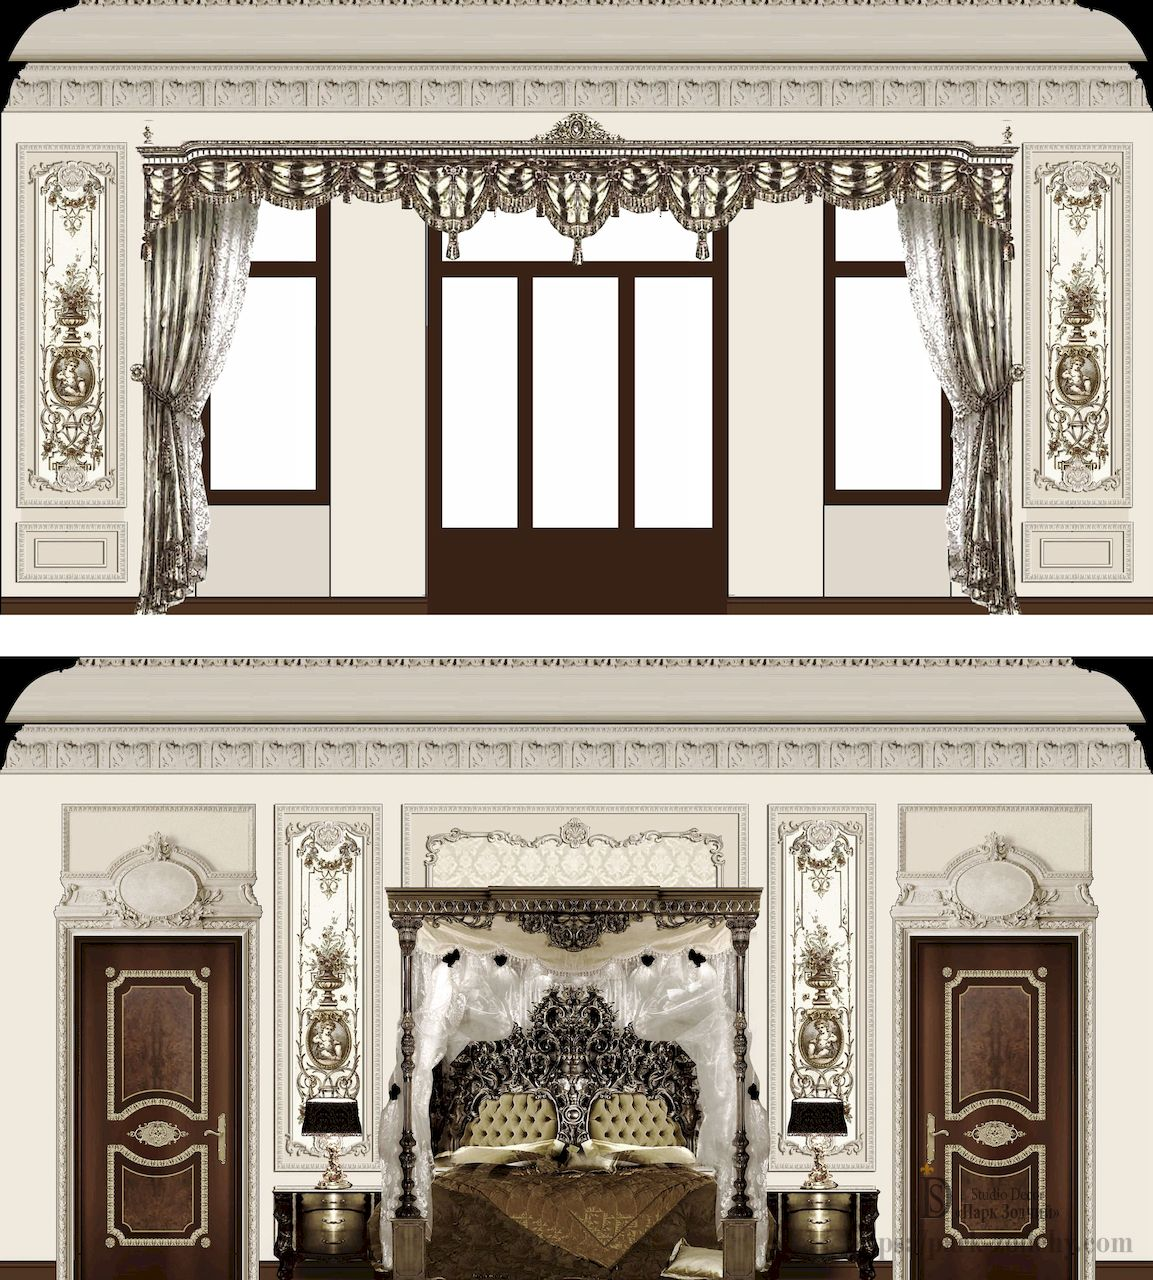 Interior design of a bedroom in the Baroque style with carved elements of a canopy